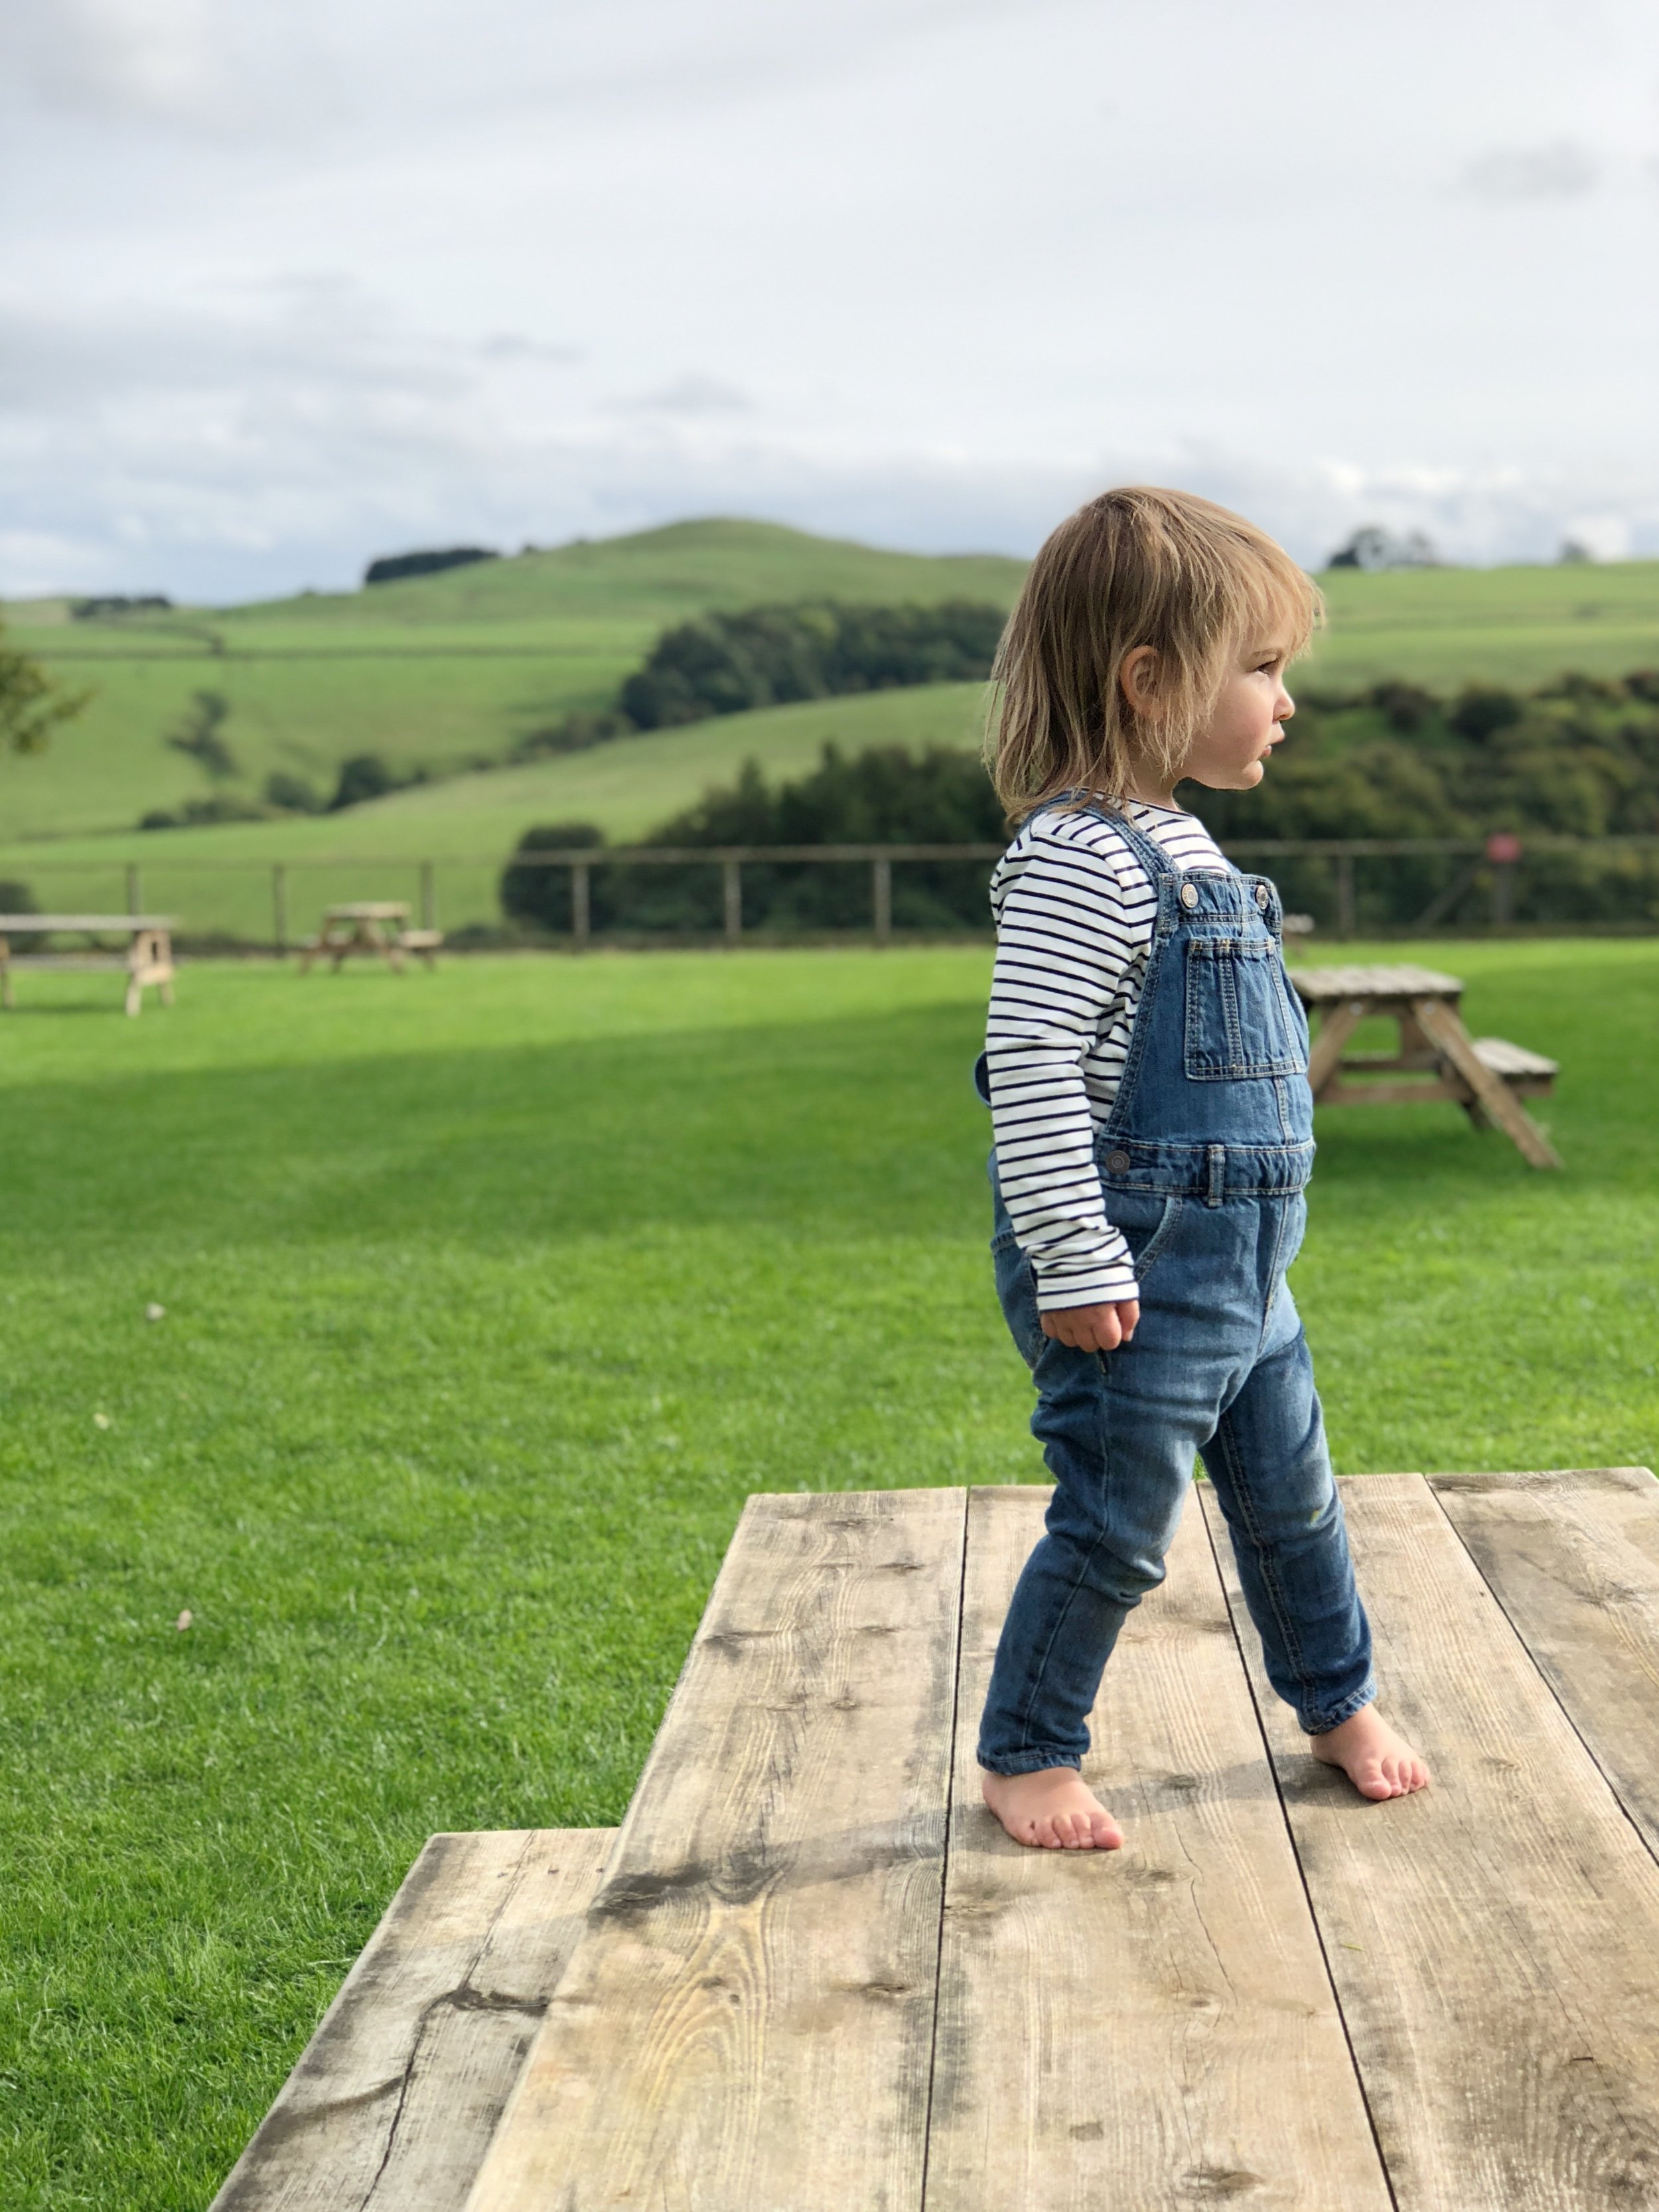 My wild Willa soaking up the beauty of the English countryside.